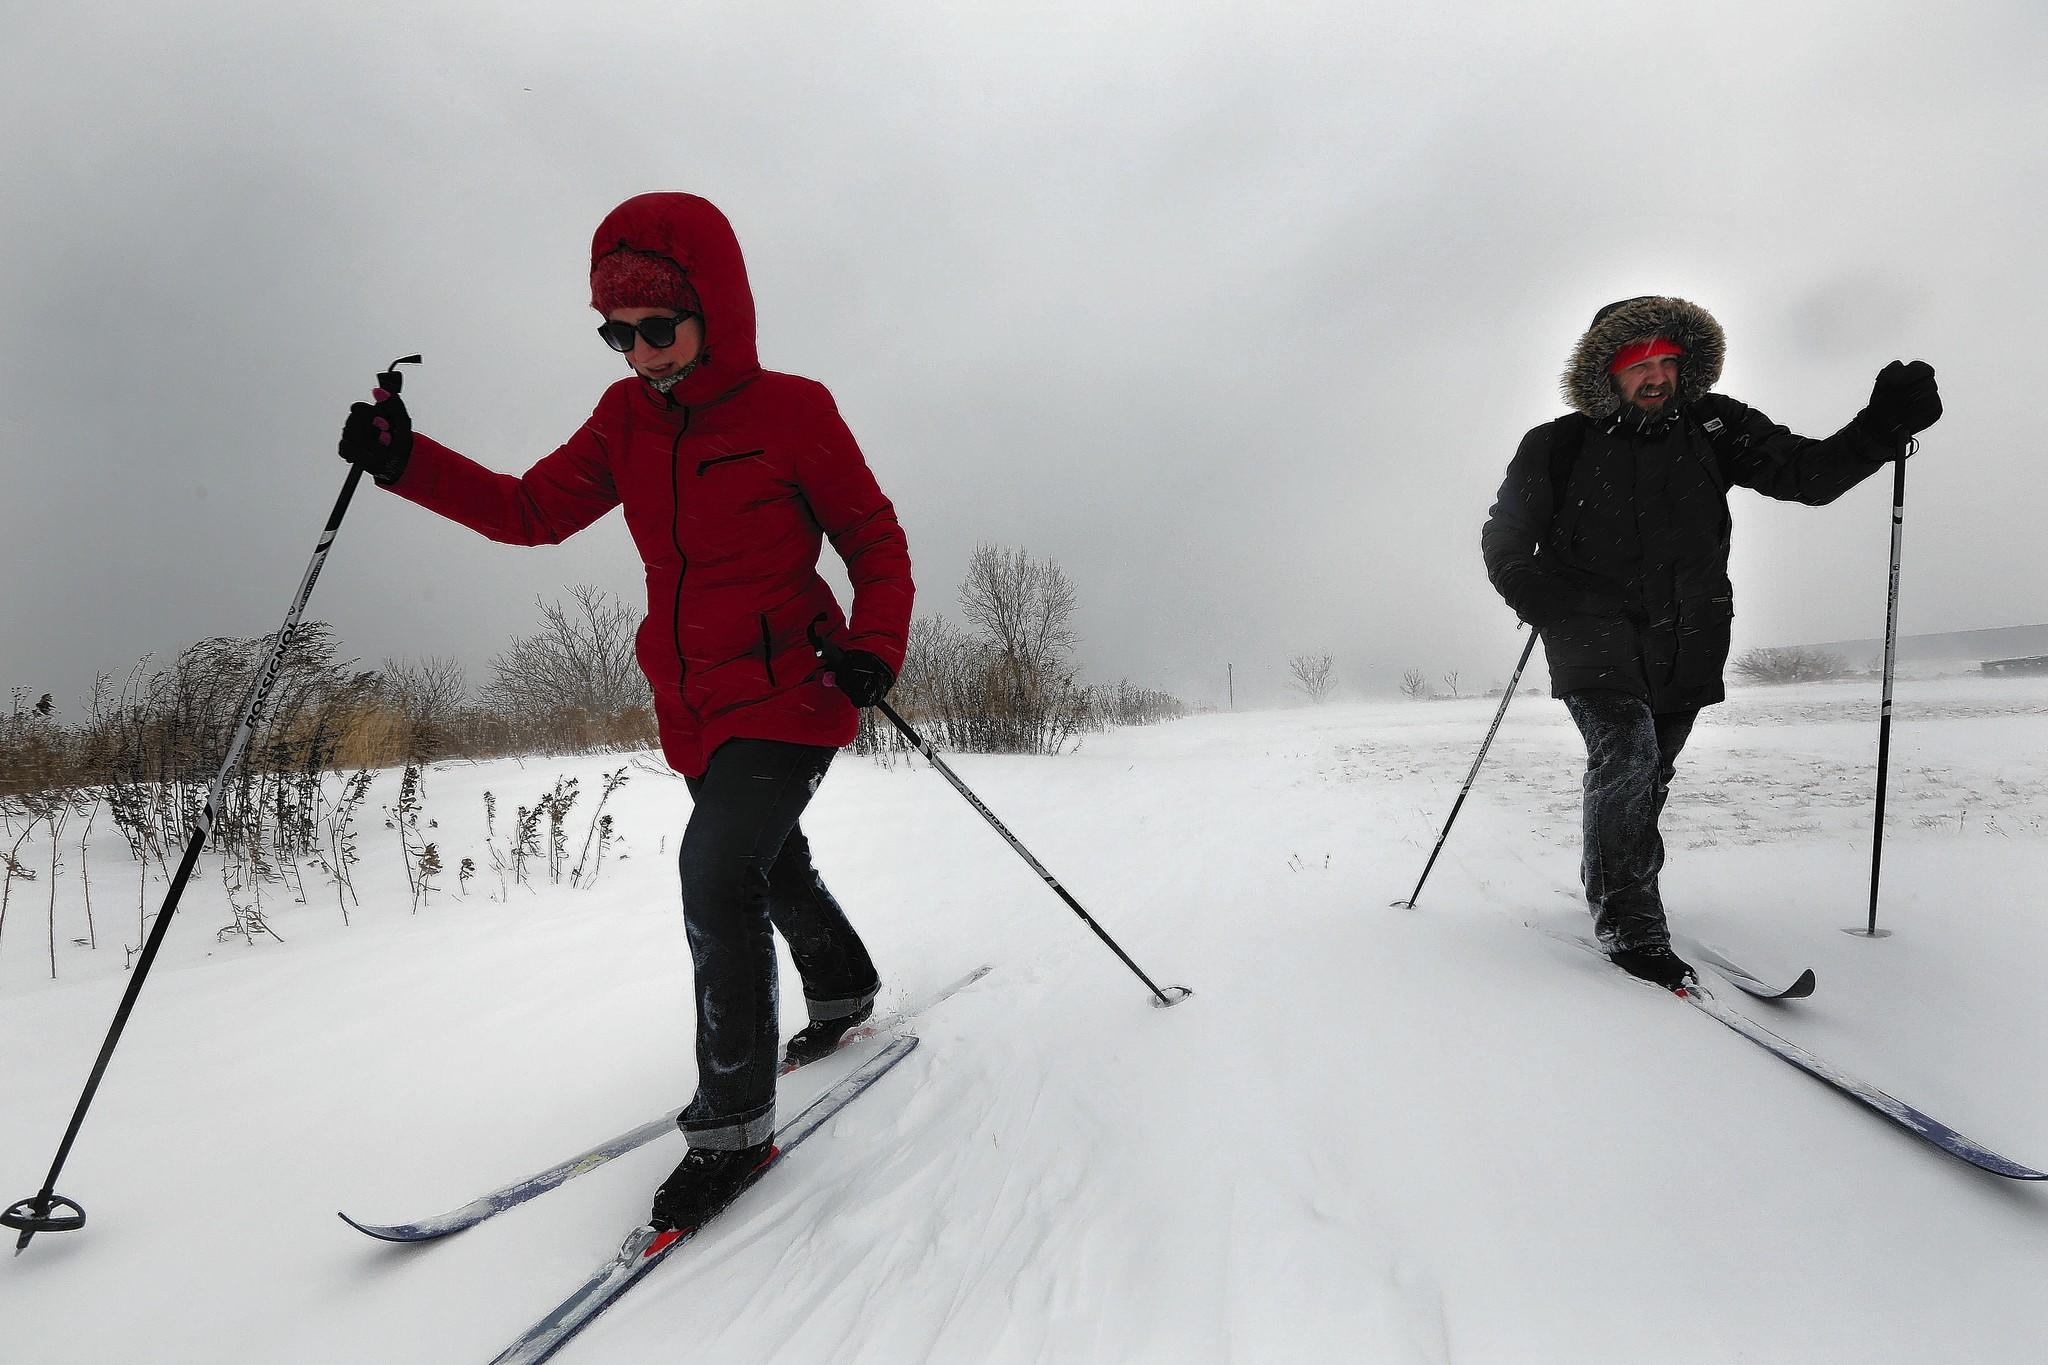 Cross-country skiers Zach Jarrett and Allison McCorkle of Chicago embrace the cold at Chicago's Northerly Island on Sunday. With the proper gear, it doesn't matter how cold it is, say some all-weather exercisers.